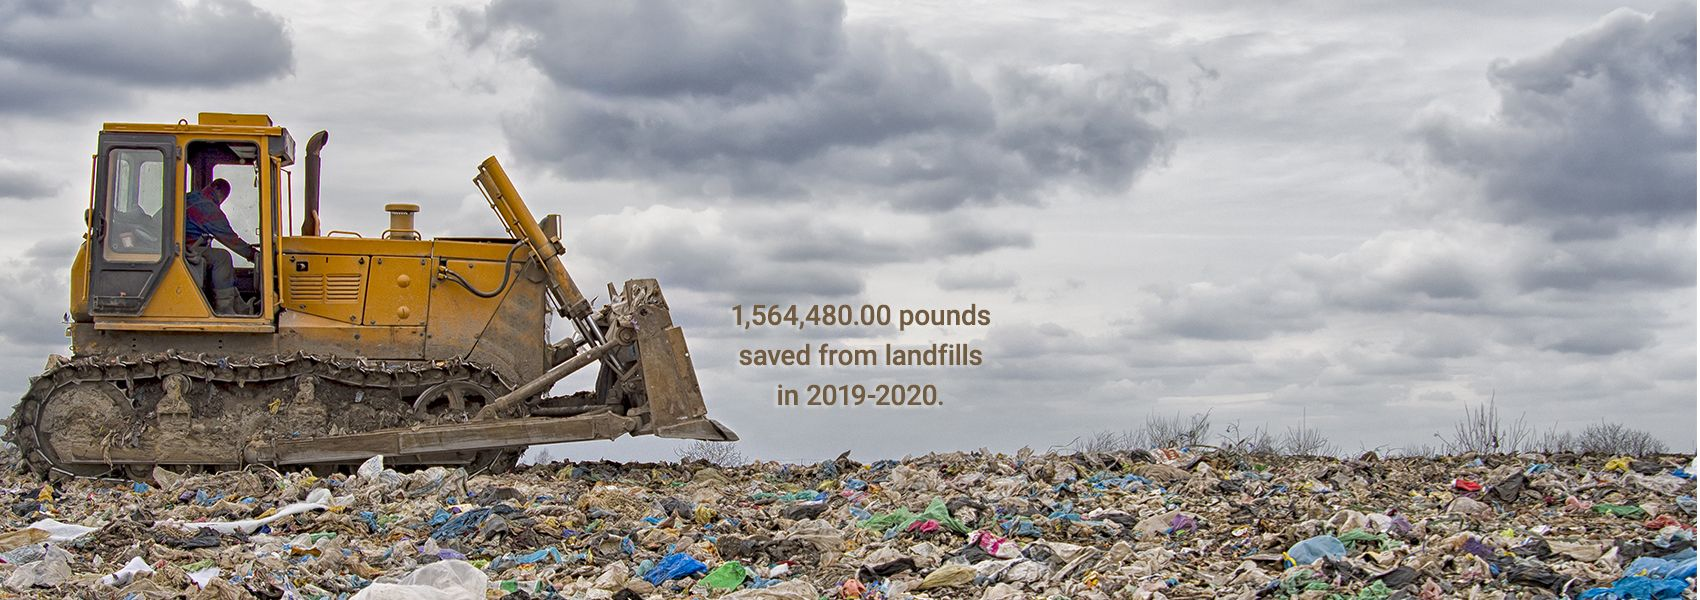 Doing our part to save the planet.